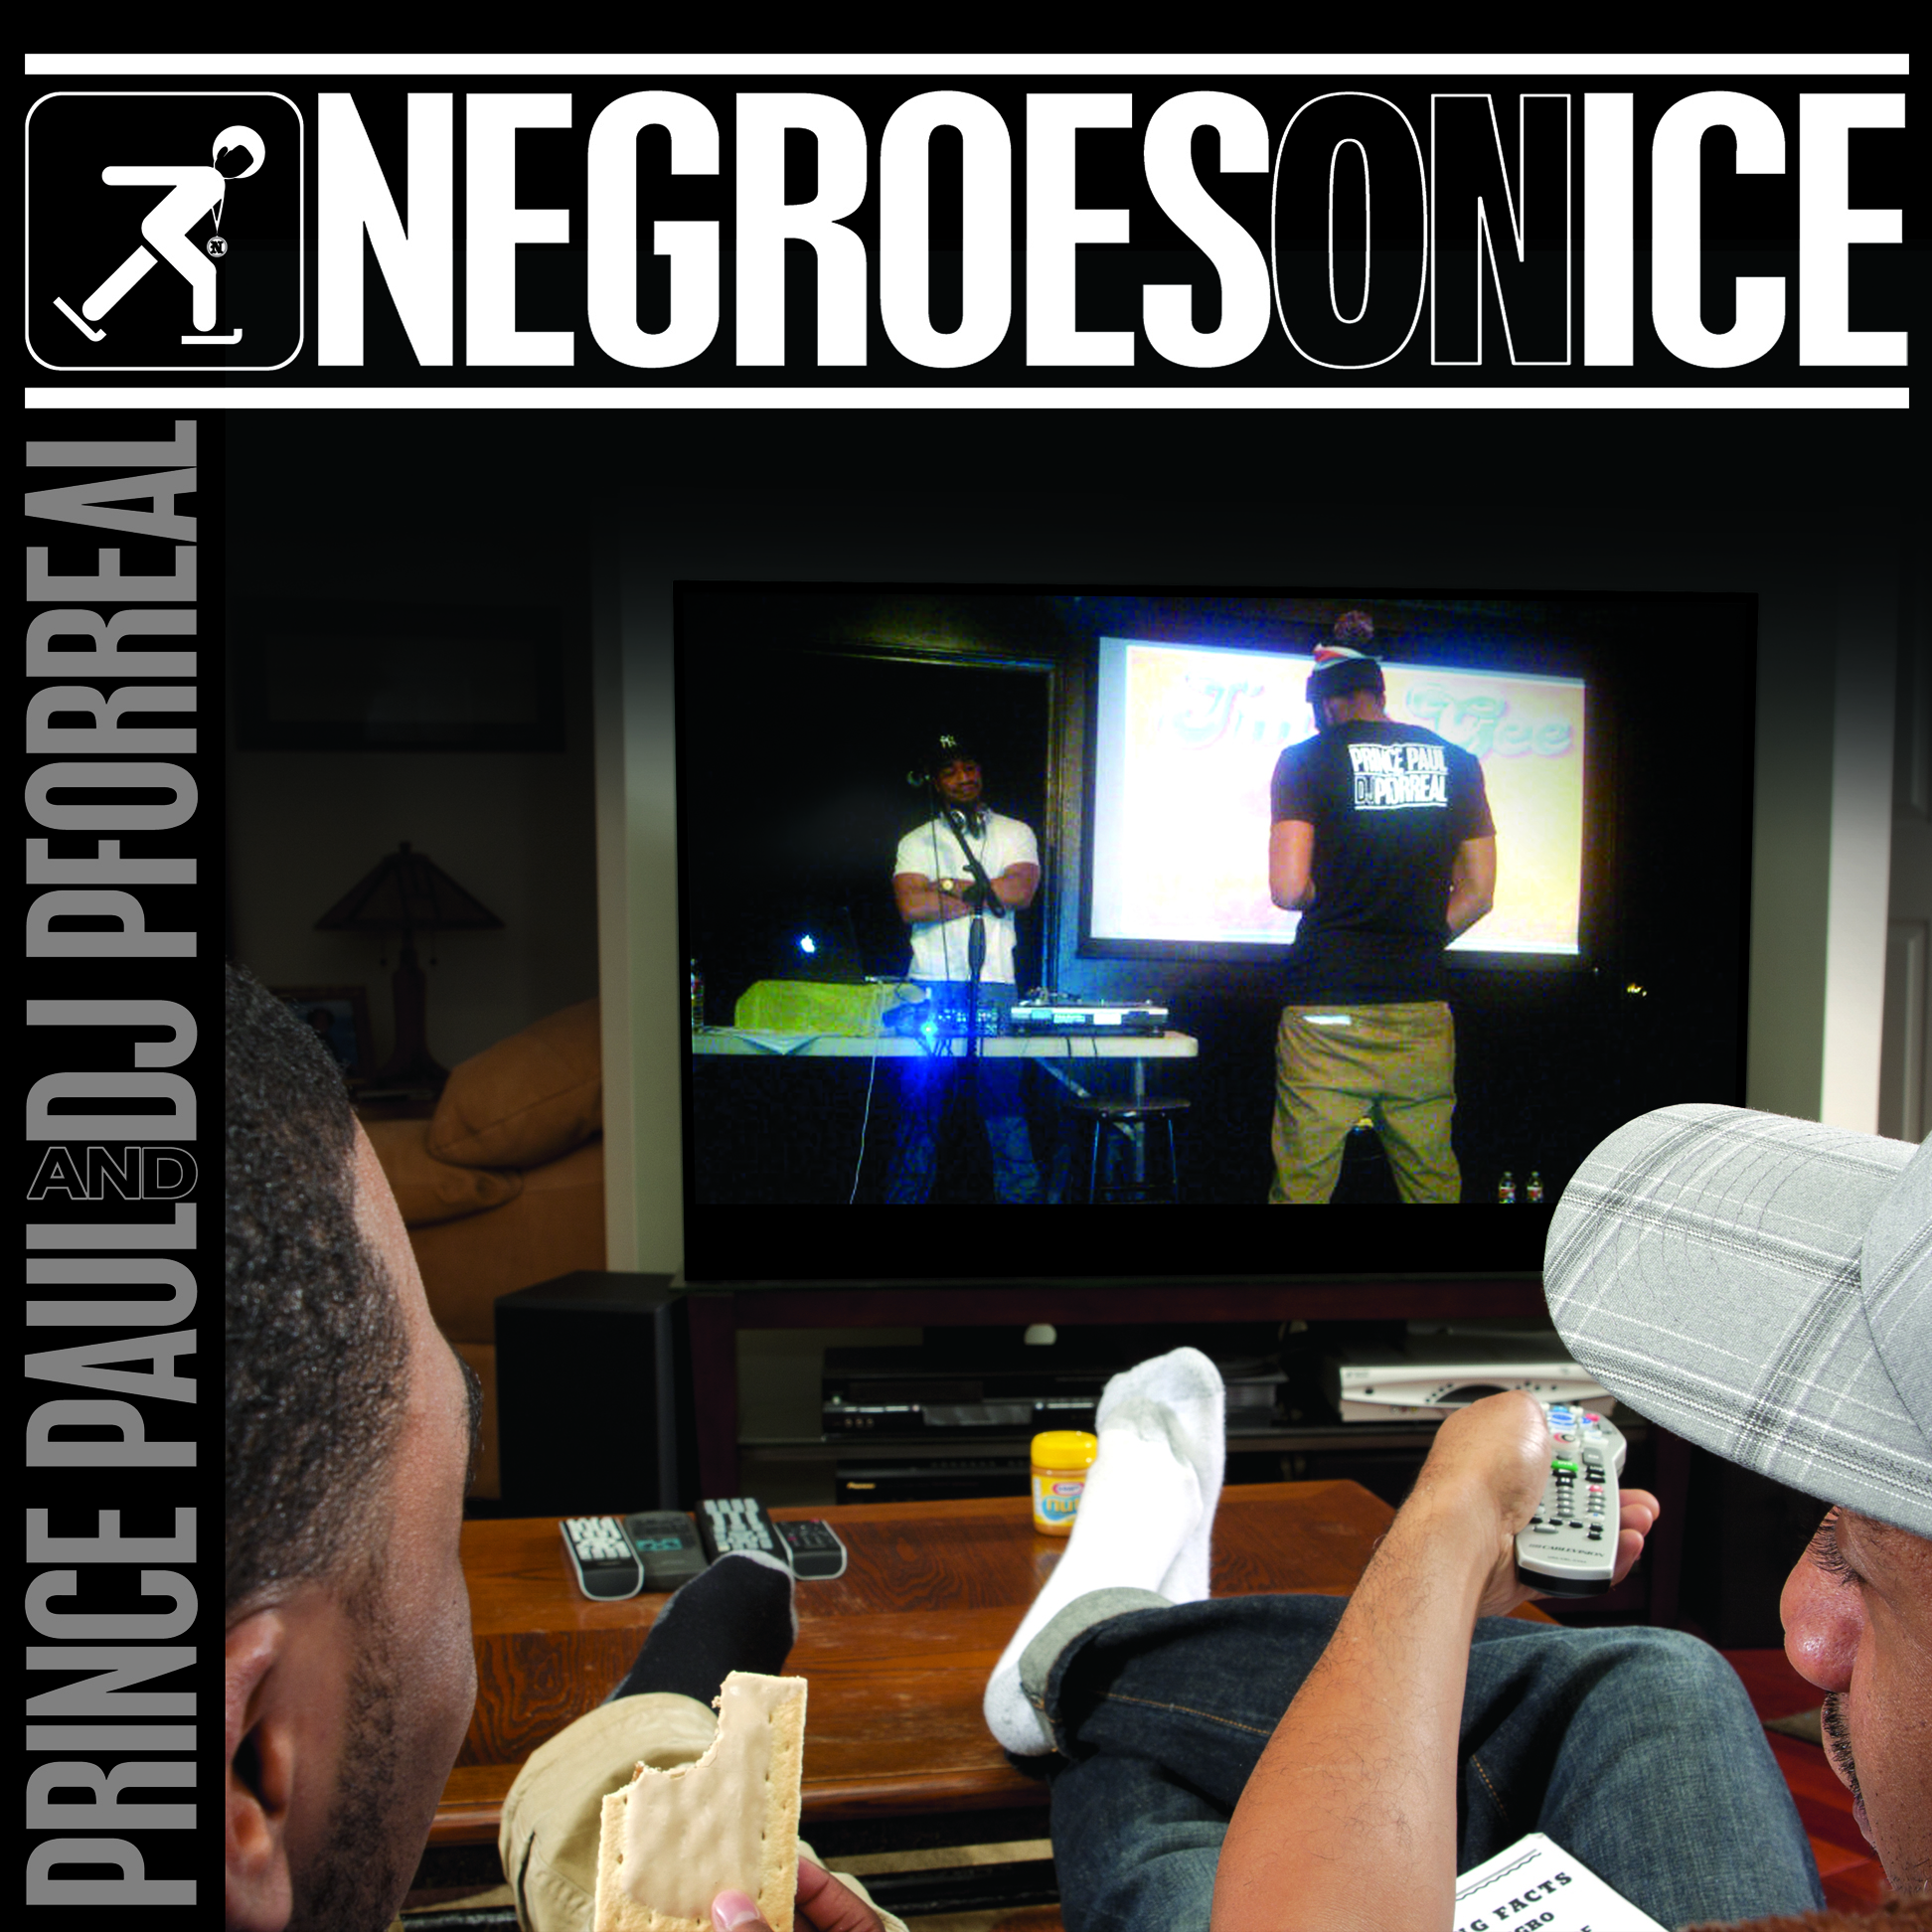 Negroes On Ice -